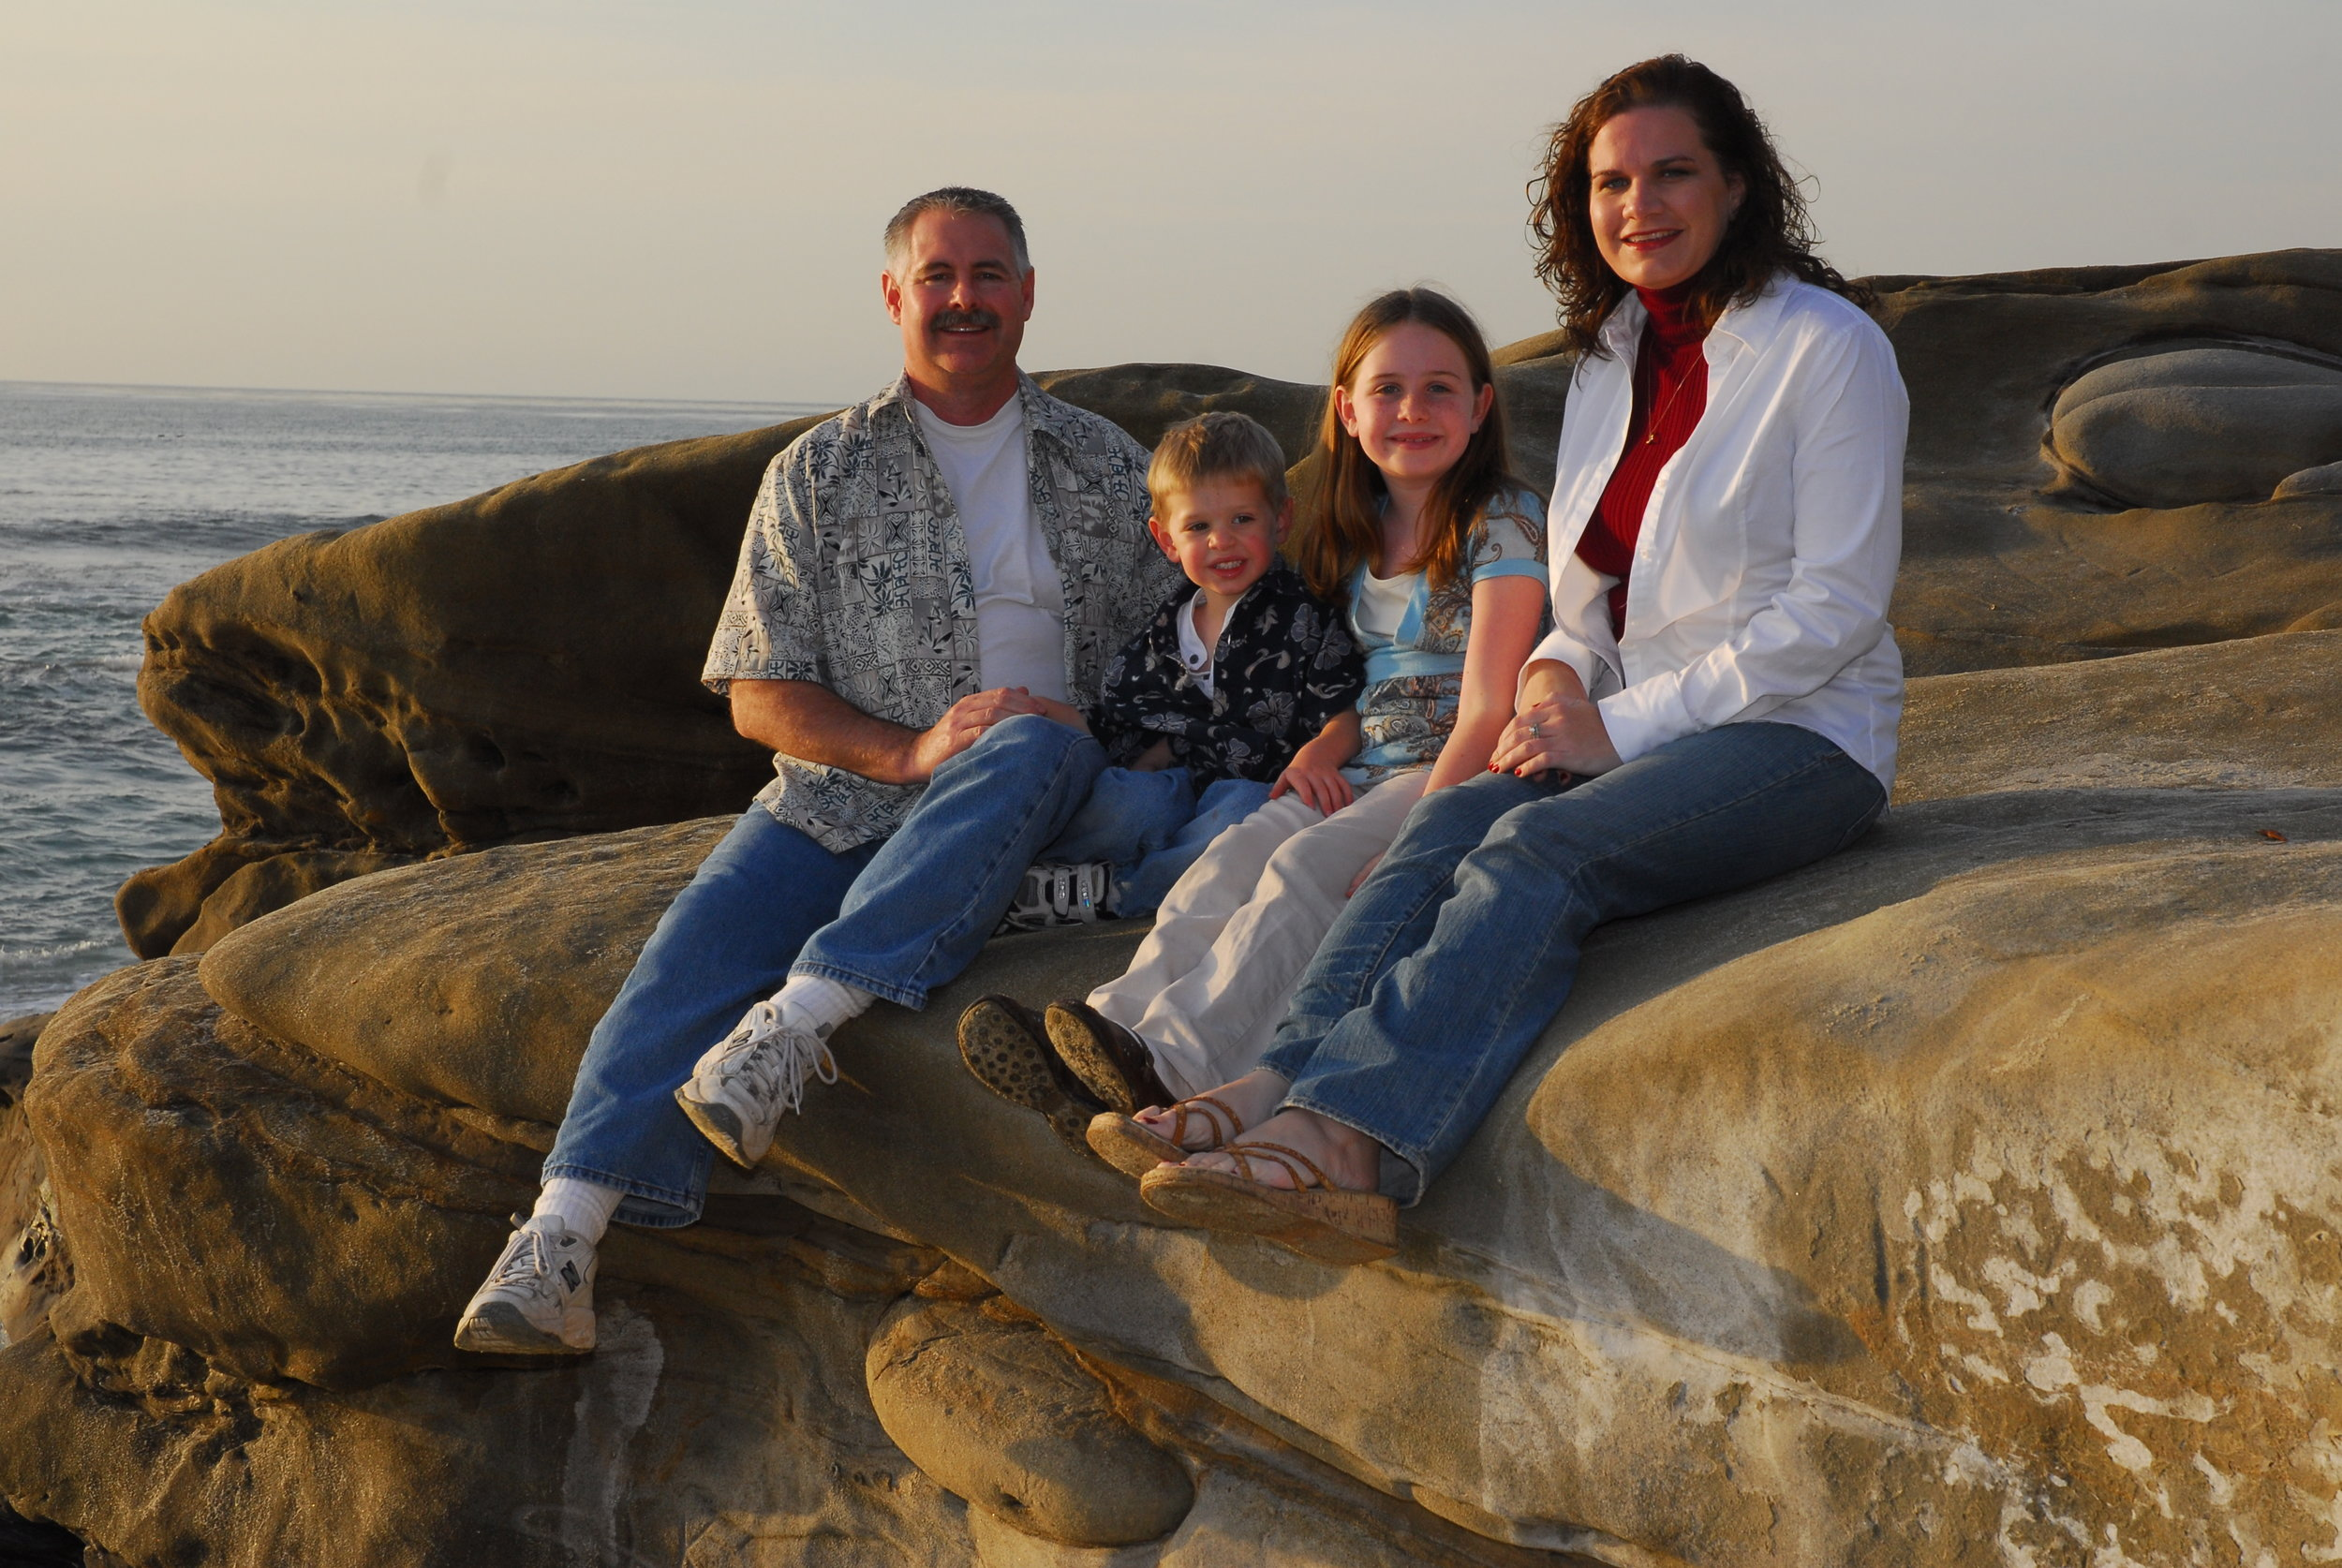 Single PersonPortraits, Families, and MORE! -